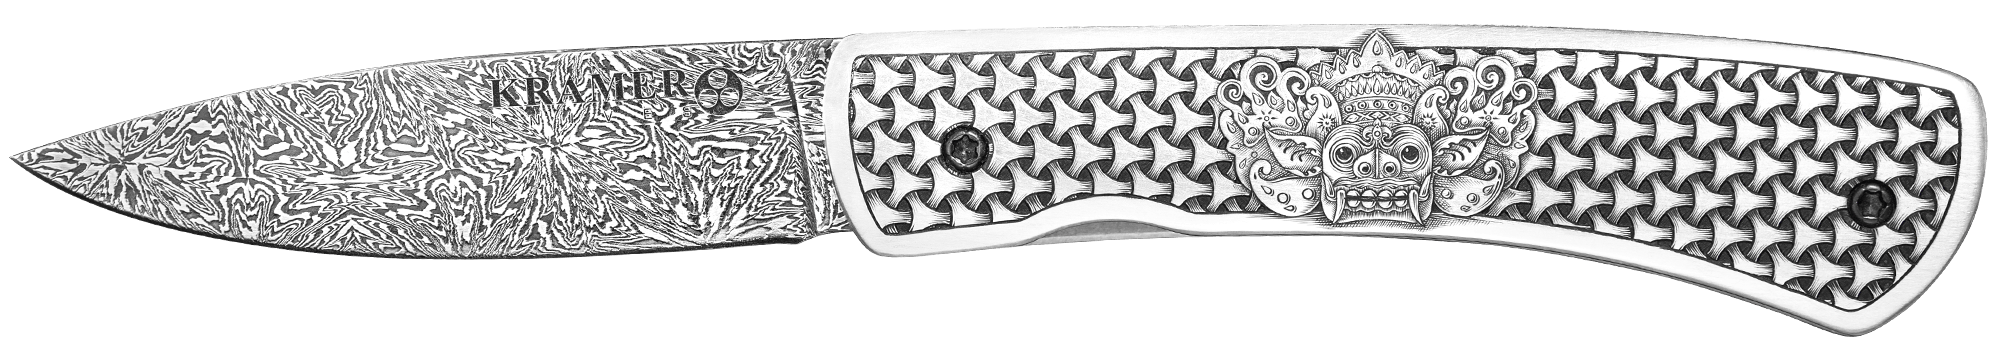 Barong Folding Knife | Kramer Knives